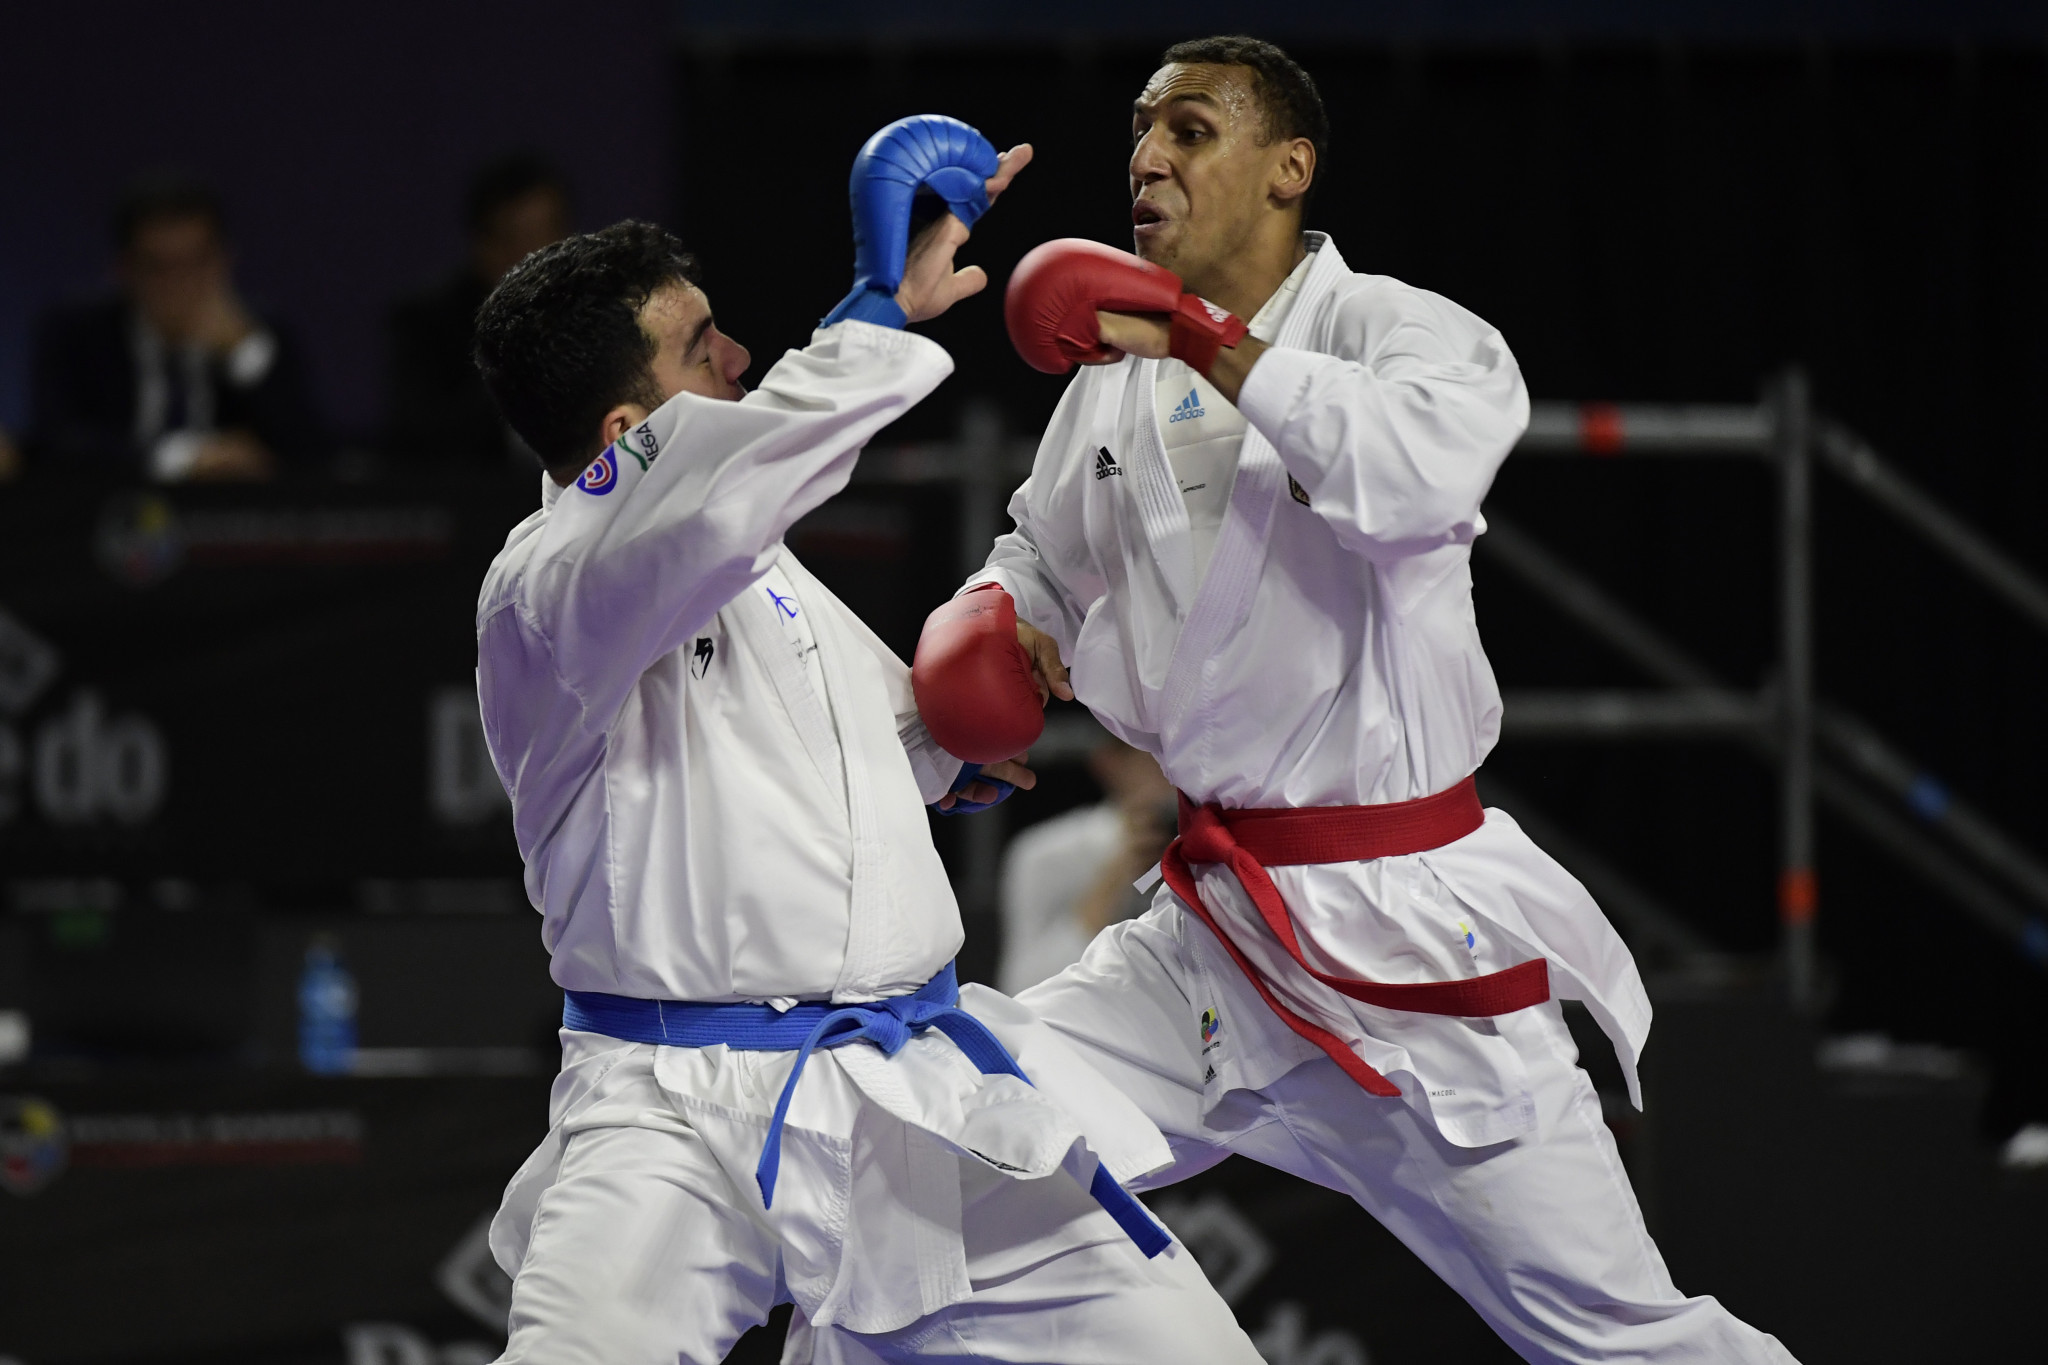 World champion Horne suffers shock defeat at Karate 1-Series A in Montreal